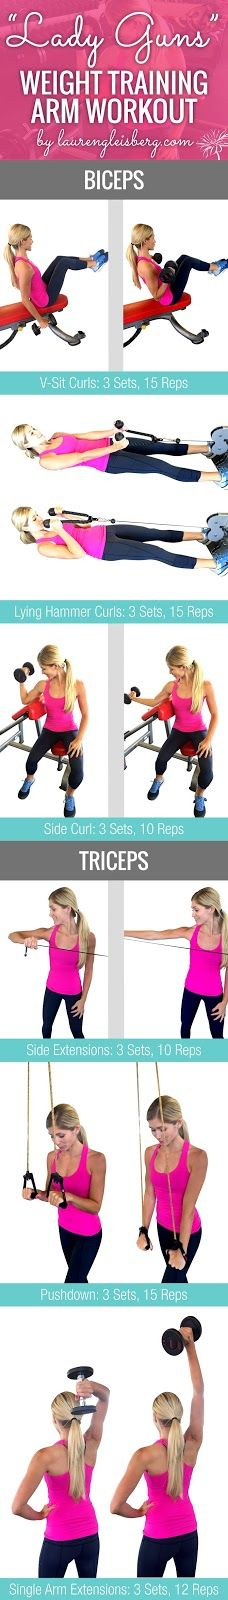 WEIGHT TRAINING ARM WORKOUT FOR WOMEN   Click for the full ConfidenceKini Challenge by LaurenGleisberg.com